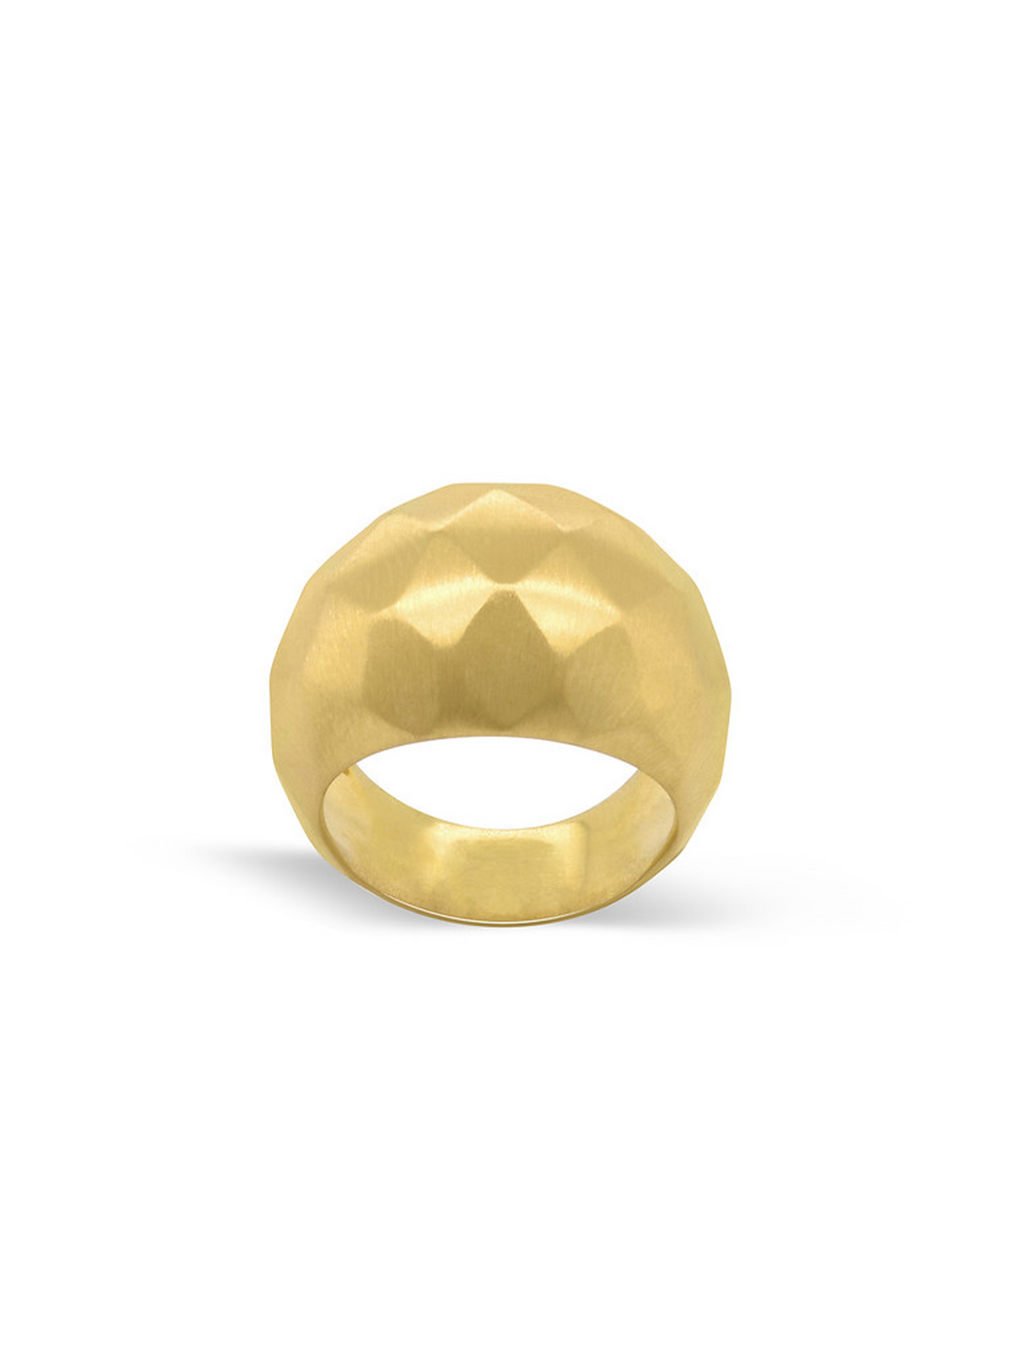 Dean Davidson Manhattan Domed Ring - Gold